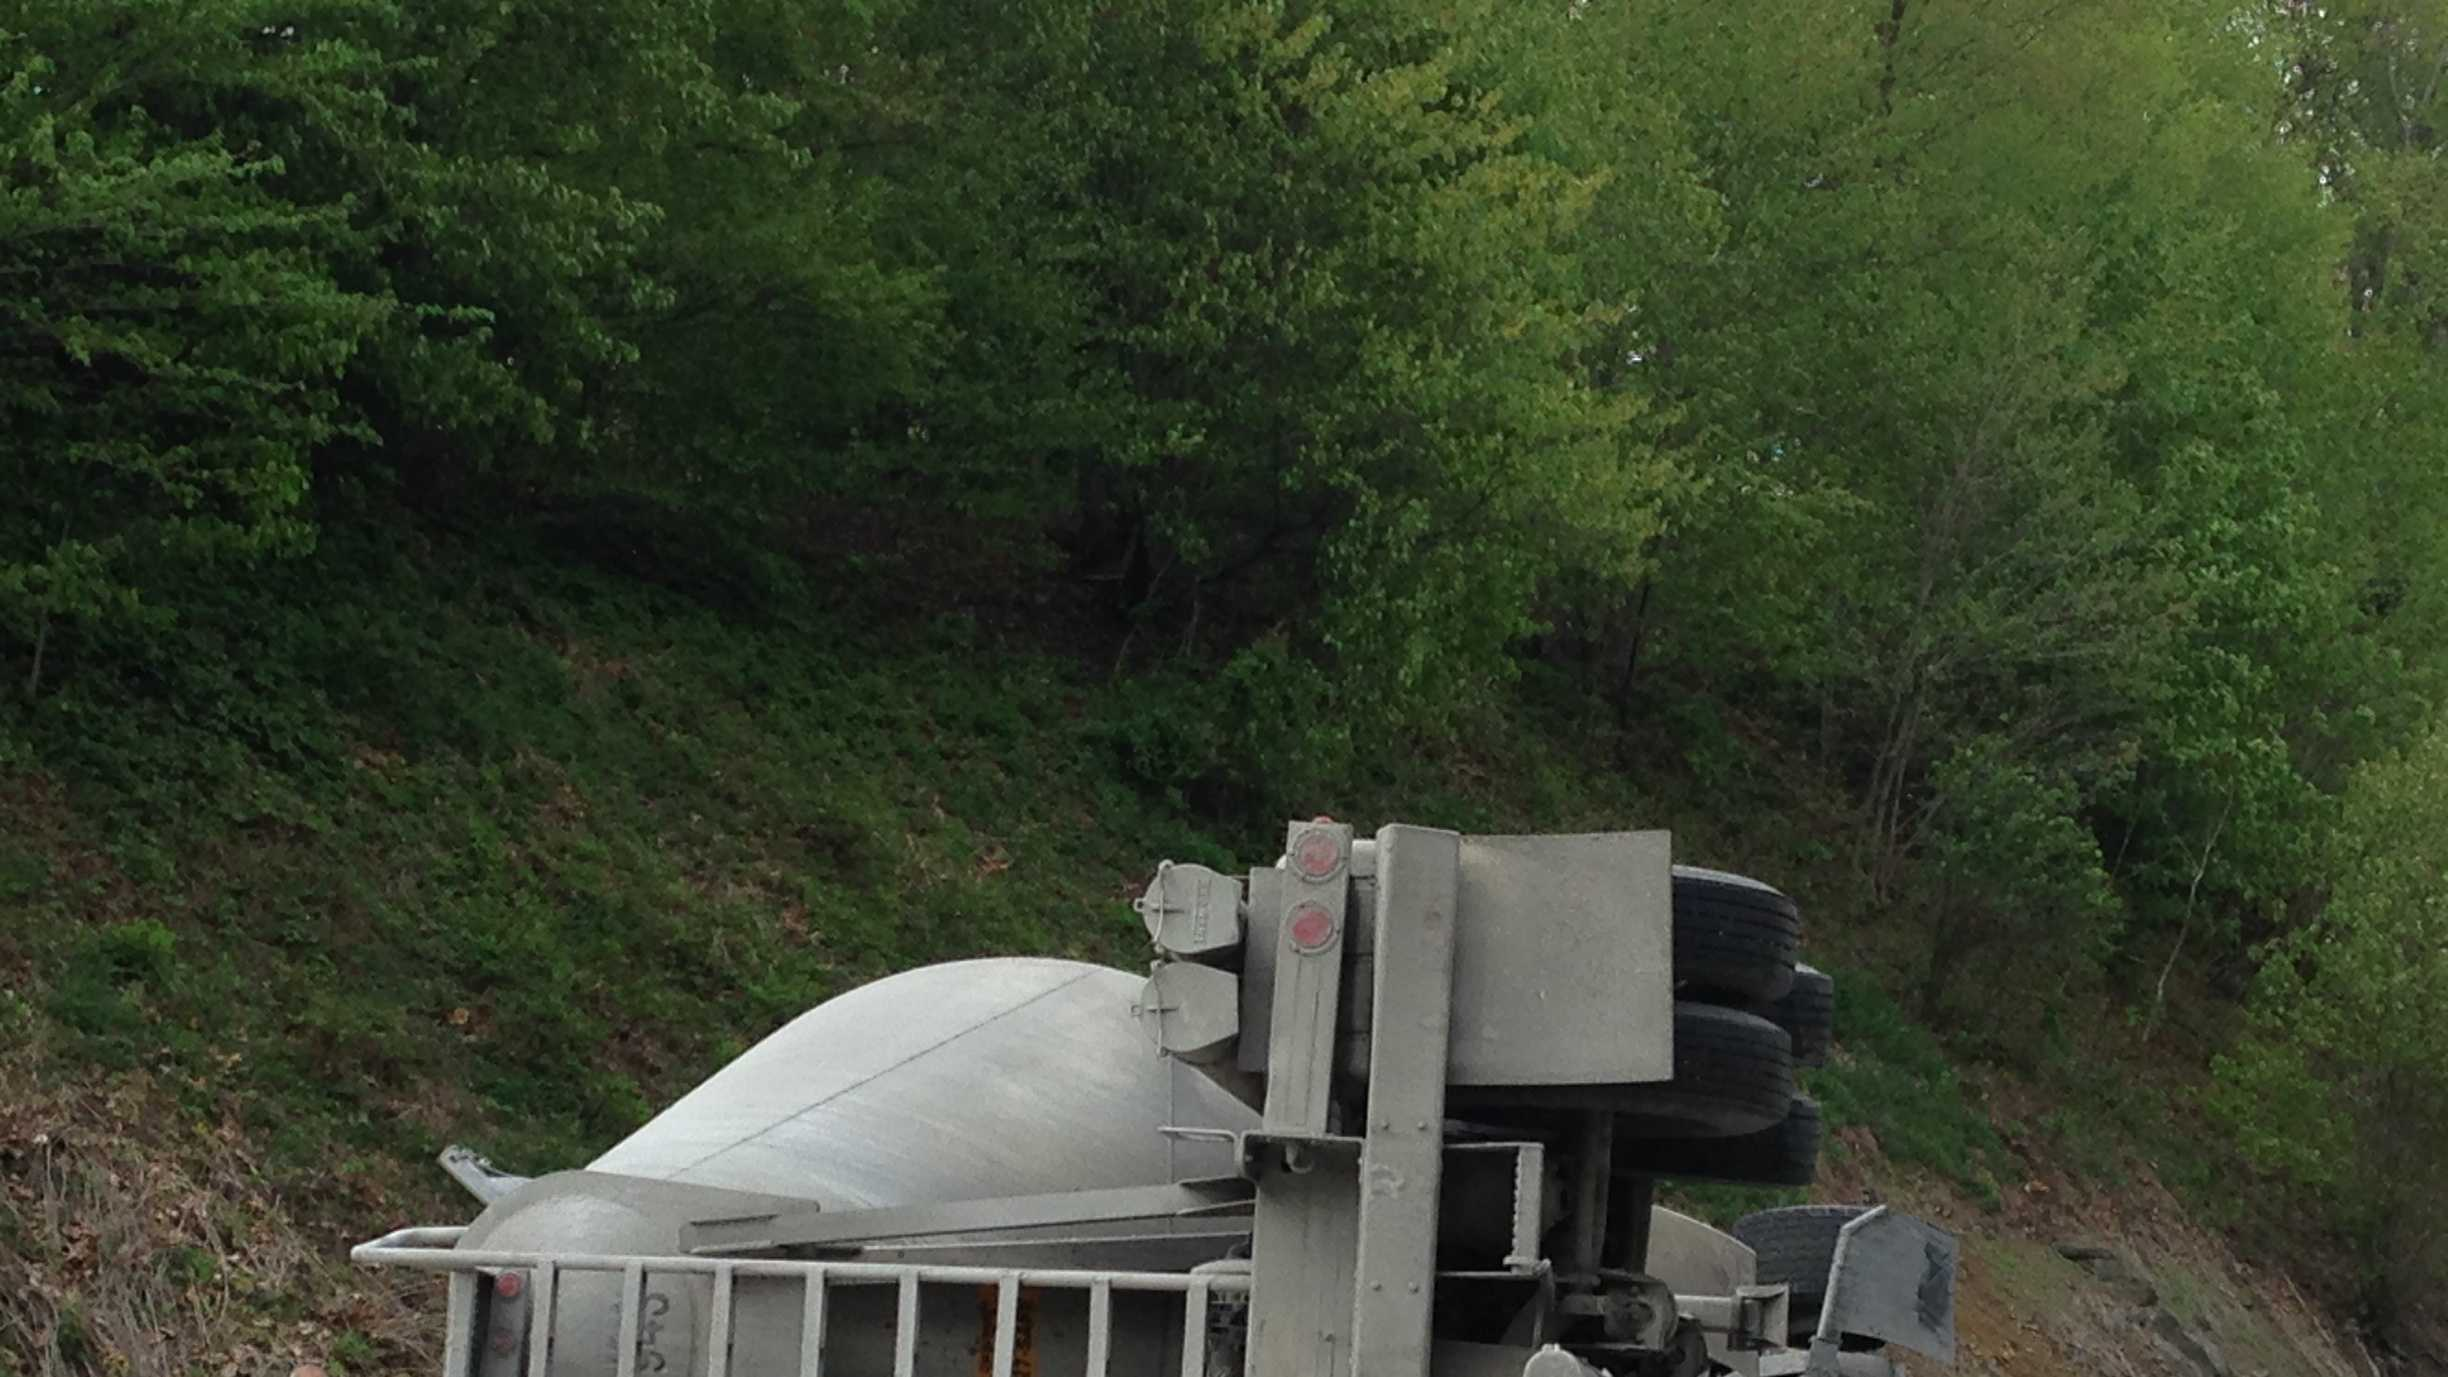 Southbound Interstate 81 is closed to traffic in northern Lebanon County due to a crash at around 1:16 p.m.